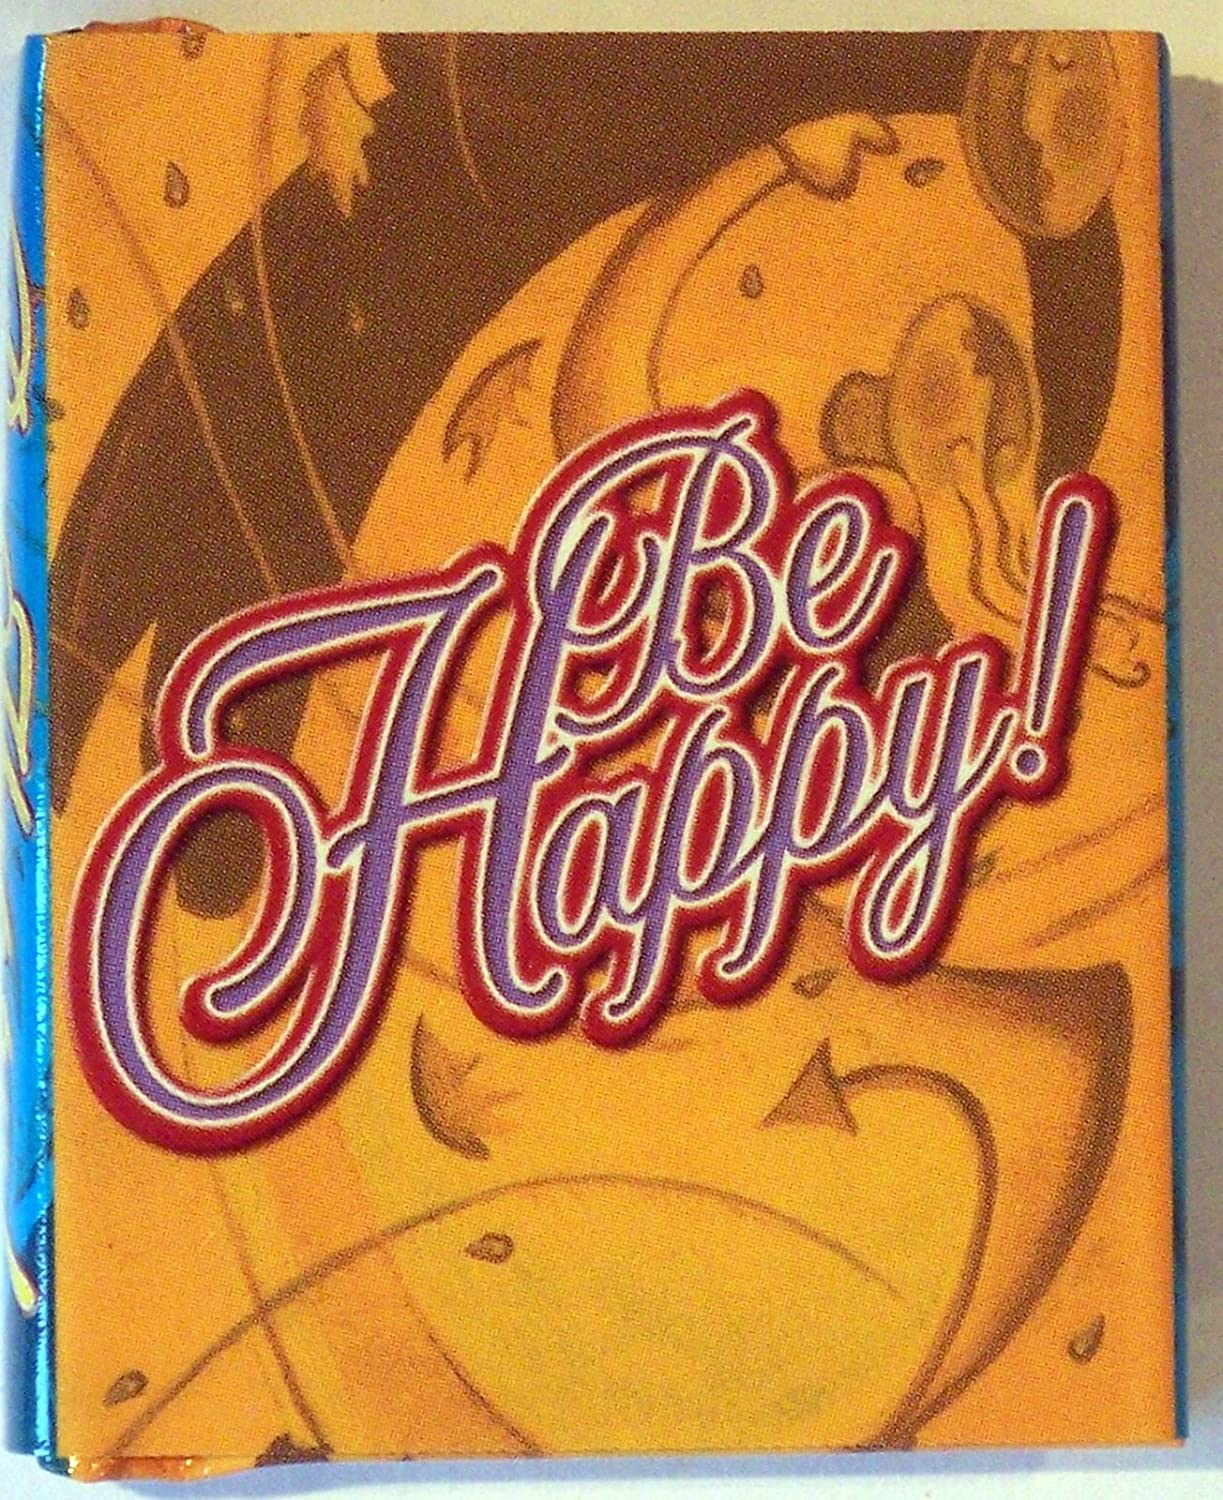 BE HAPPY MINI BOOK - MINIATURE NOVELTY BOOK CHRISTMAS STOCKING FILLER -  CHECK OUT THE OTHER MINI BOOKS IN MY AMAZON STORE